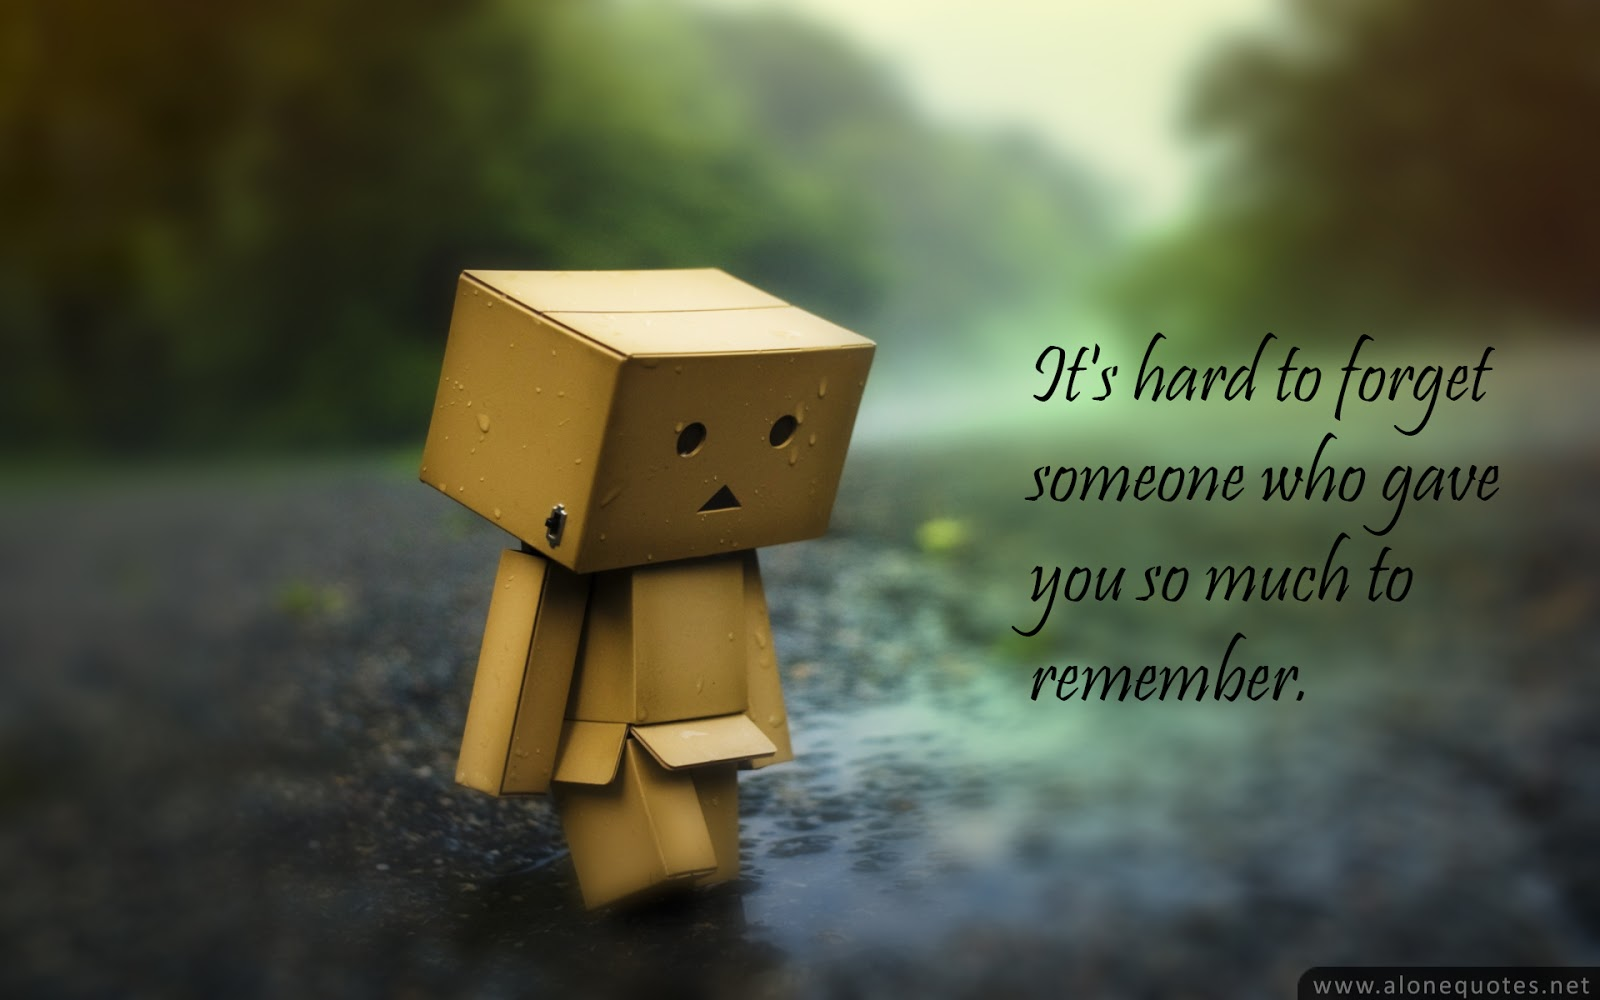 Alone hd wallpapers with quotes 1600x1000